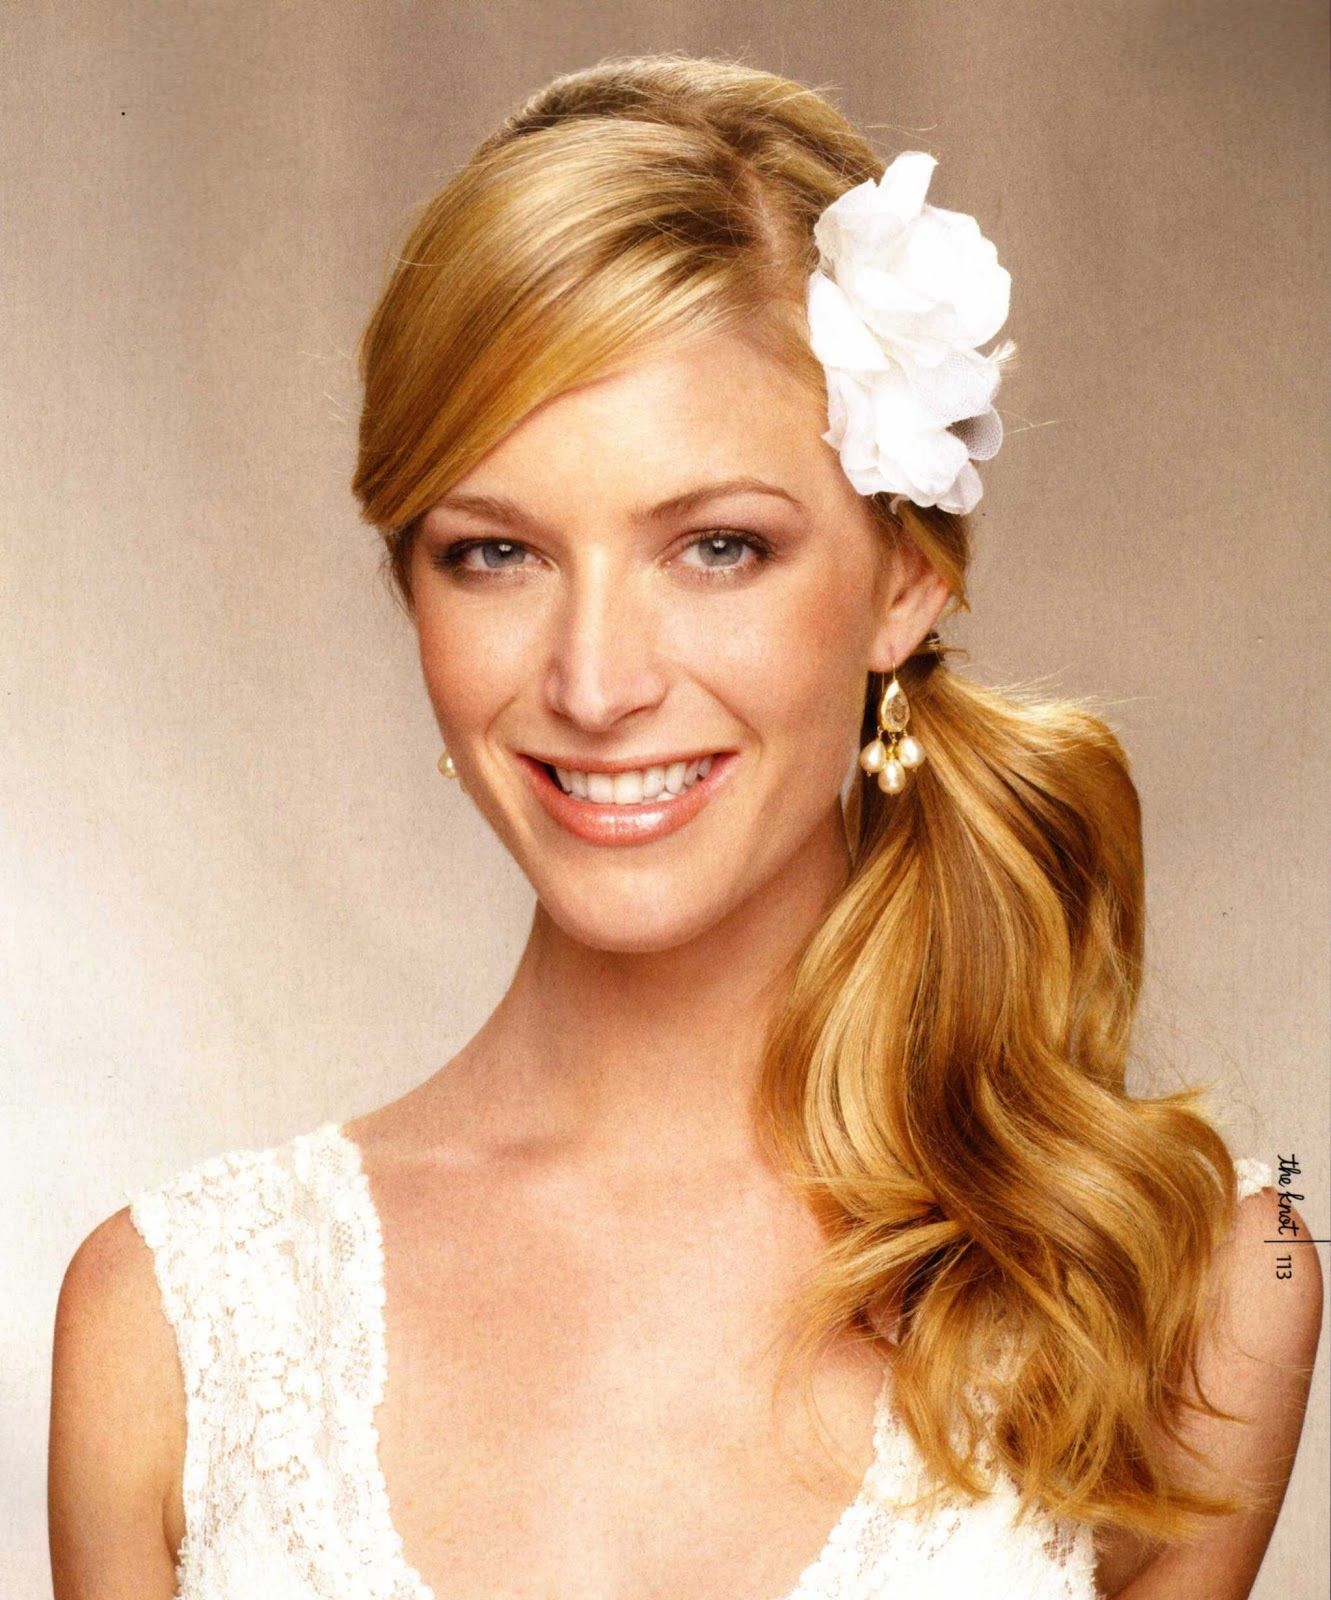 Surprising Bridesmaid Hairstyles Hairstyles And Bridesmaid On Pinterest Hairstyles For Women Draintrainus